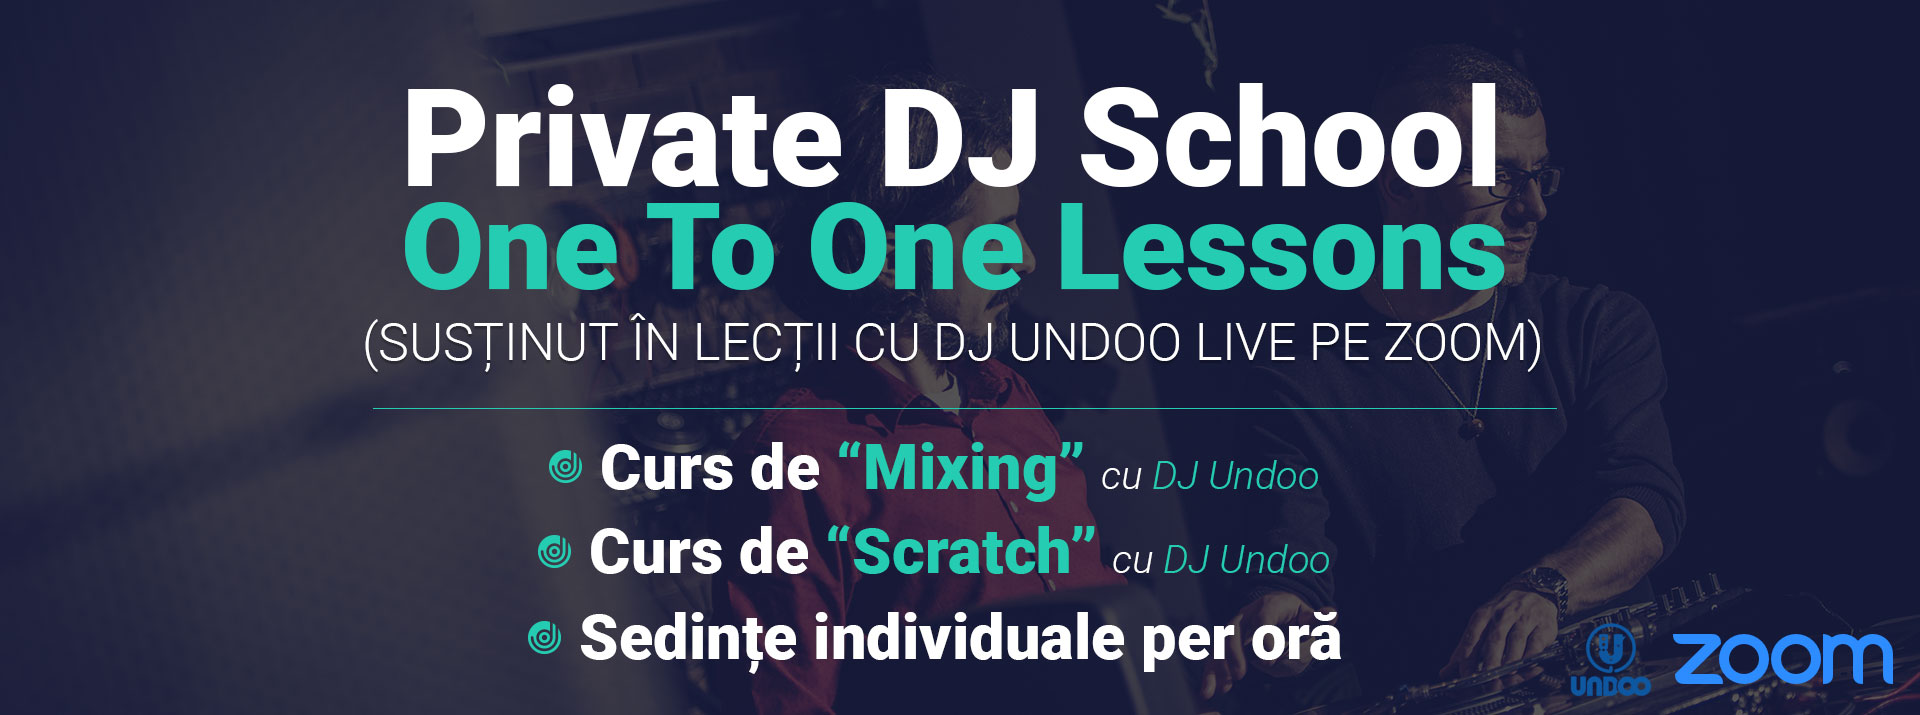 One To One Lessons Live cu DJ Undoo pe Zoom